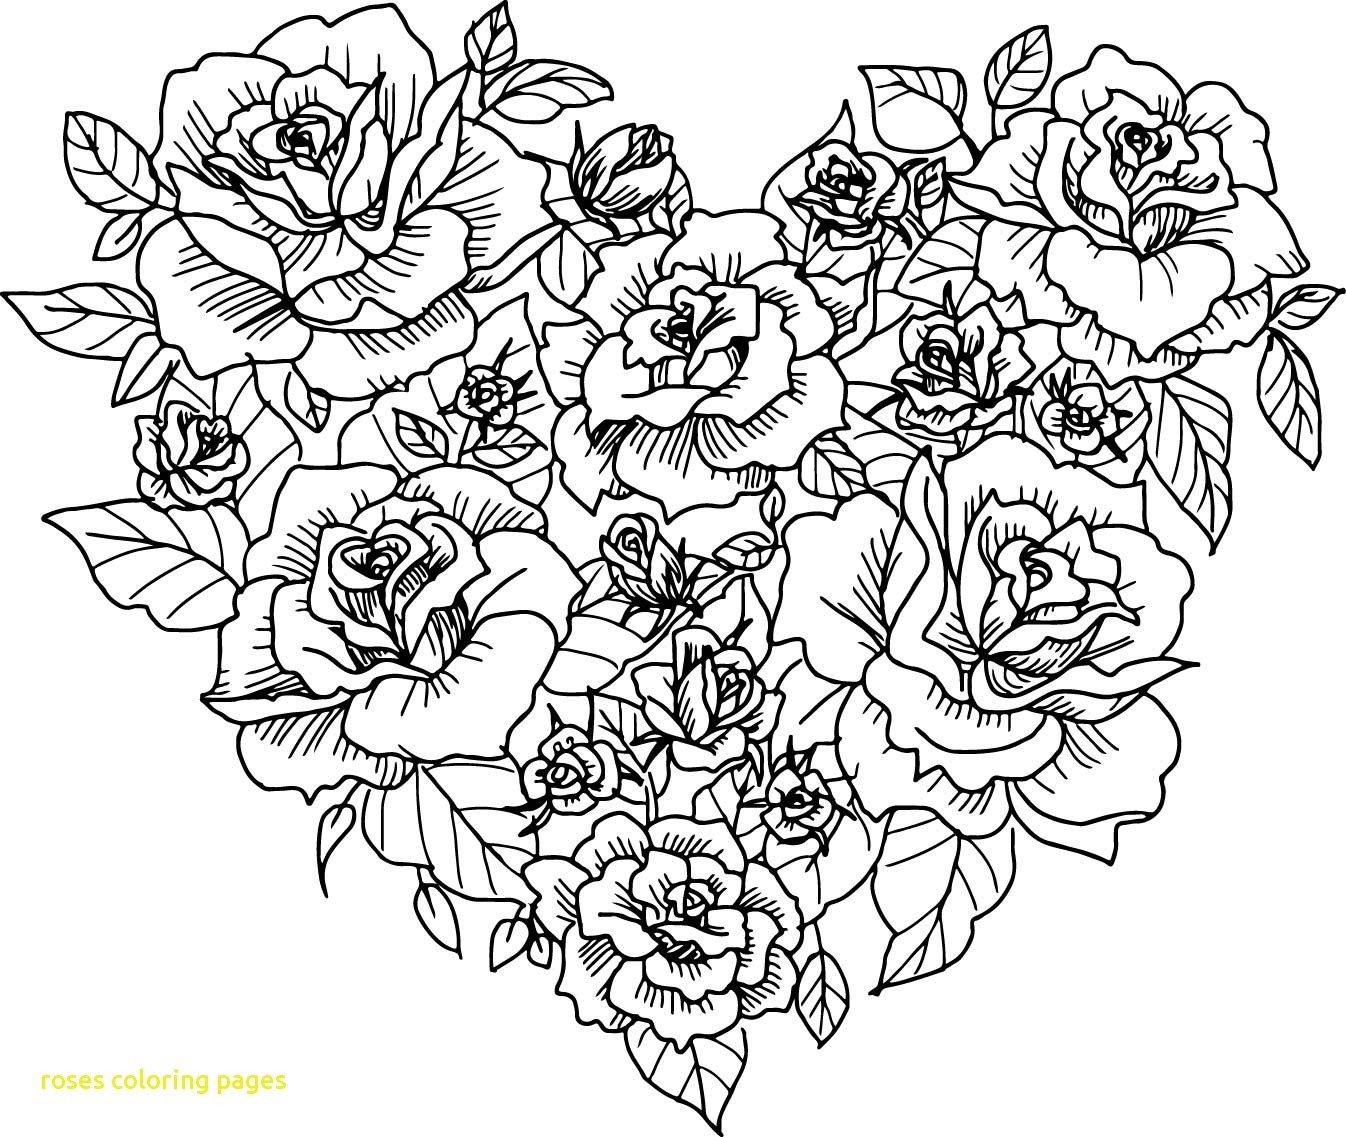 Free Coloring Pages Hearts Free Coloring Pages Of Roses And Heart Hearts With Printable 6 O